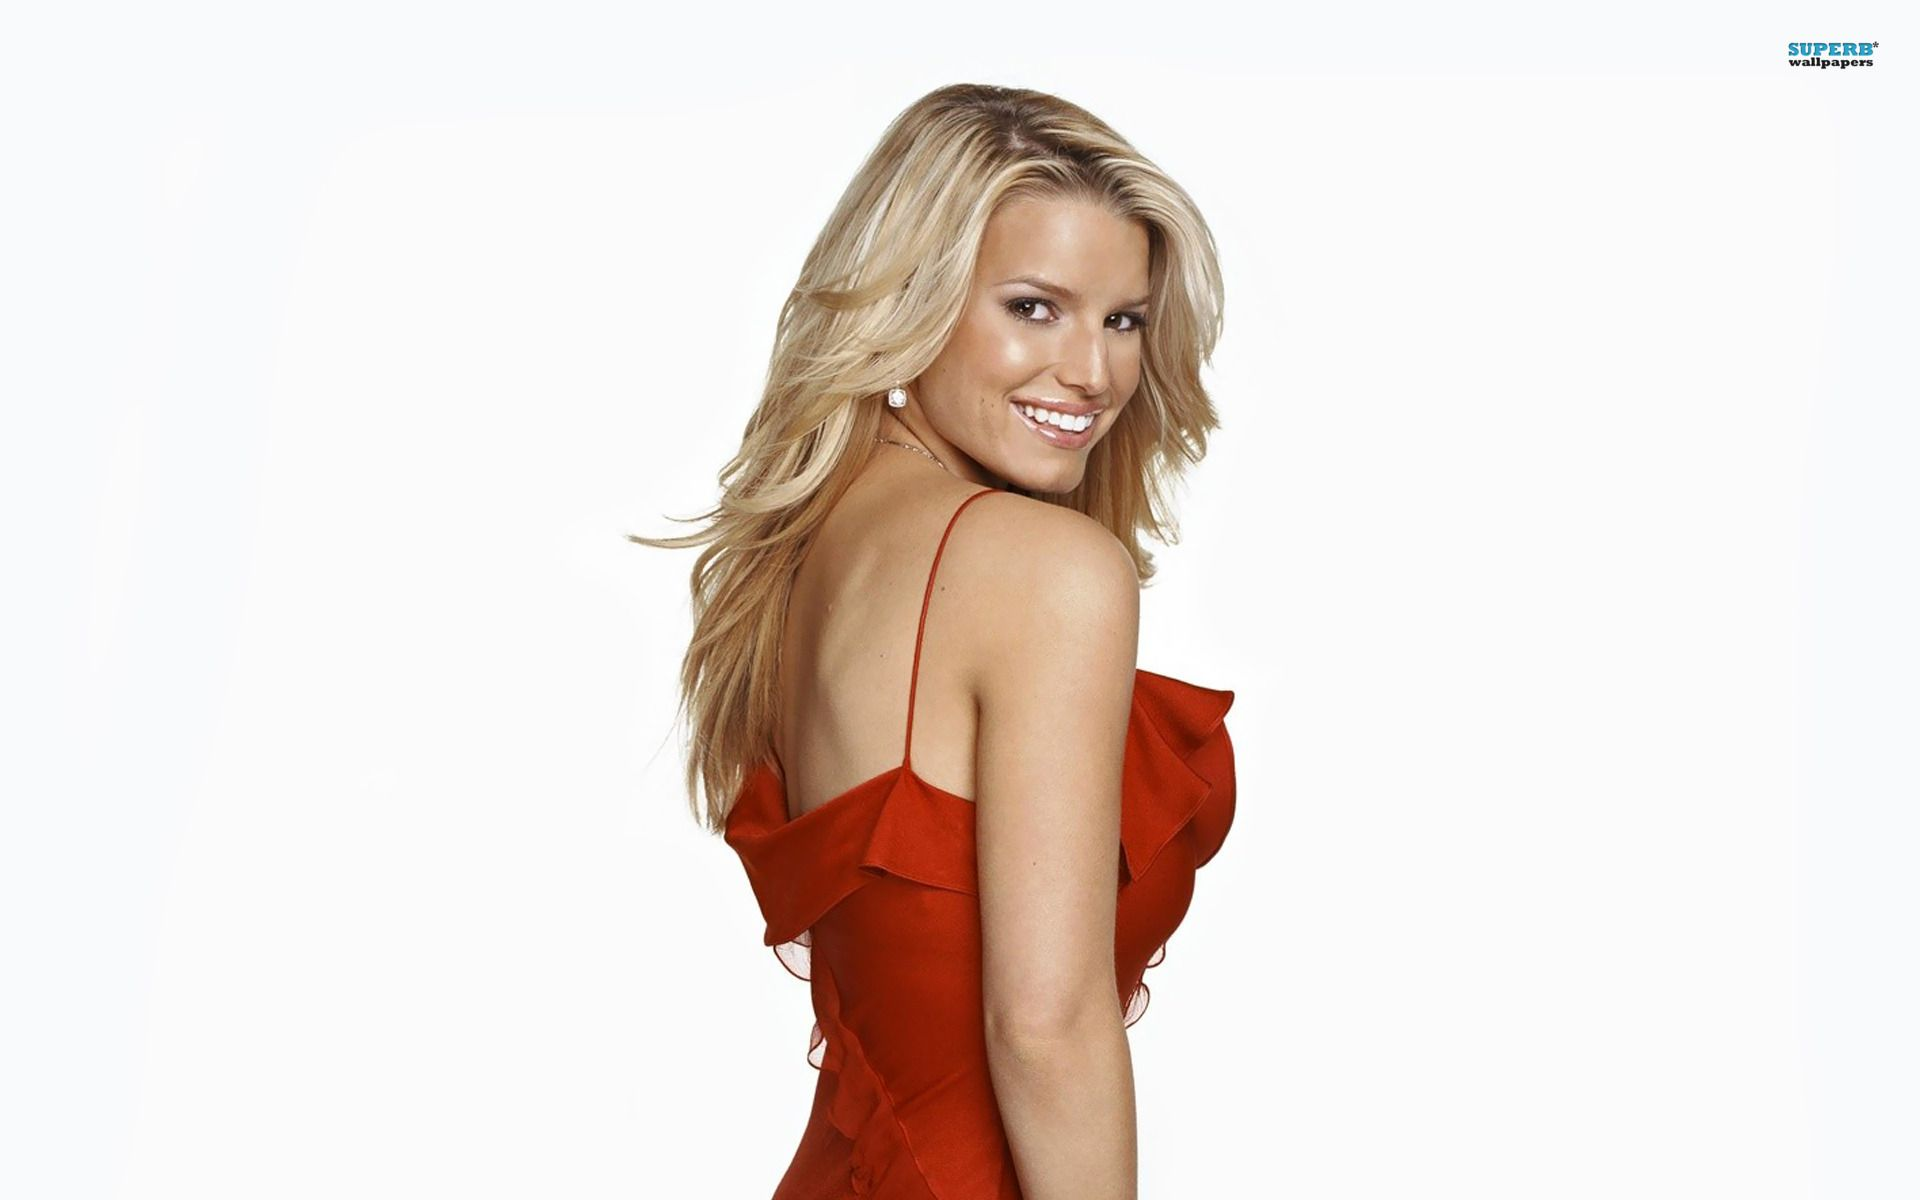 Jessica Simpson Backgrounds Jessica Simpson Wallpaper Celebrity Wallpapers 12897